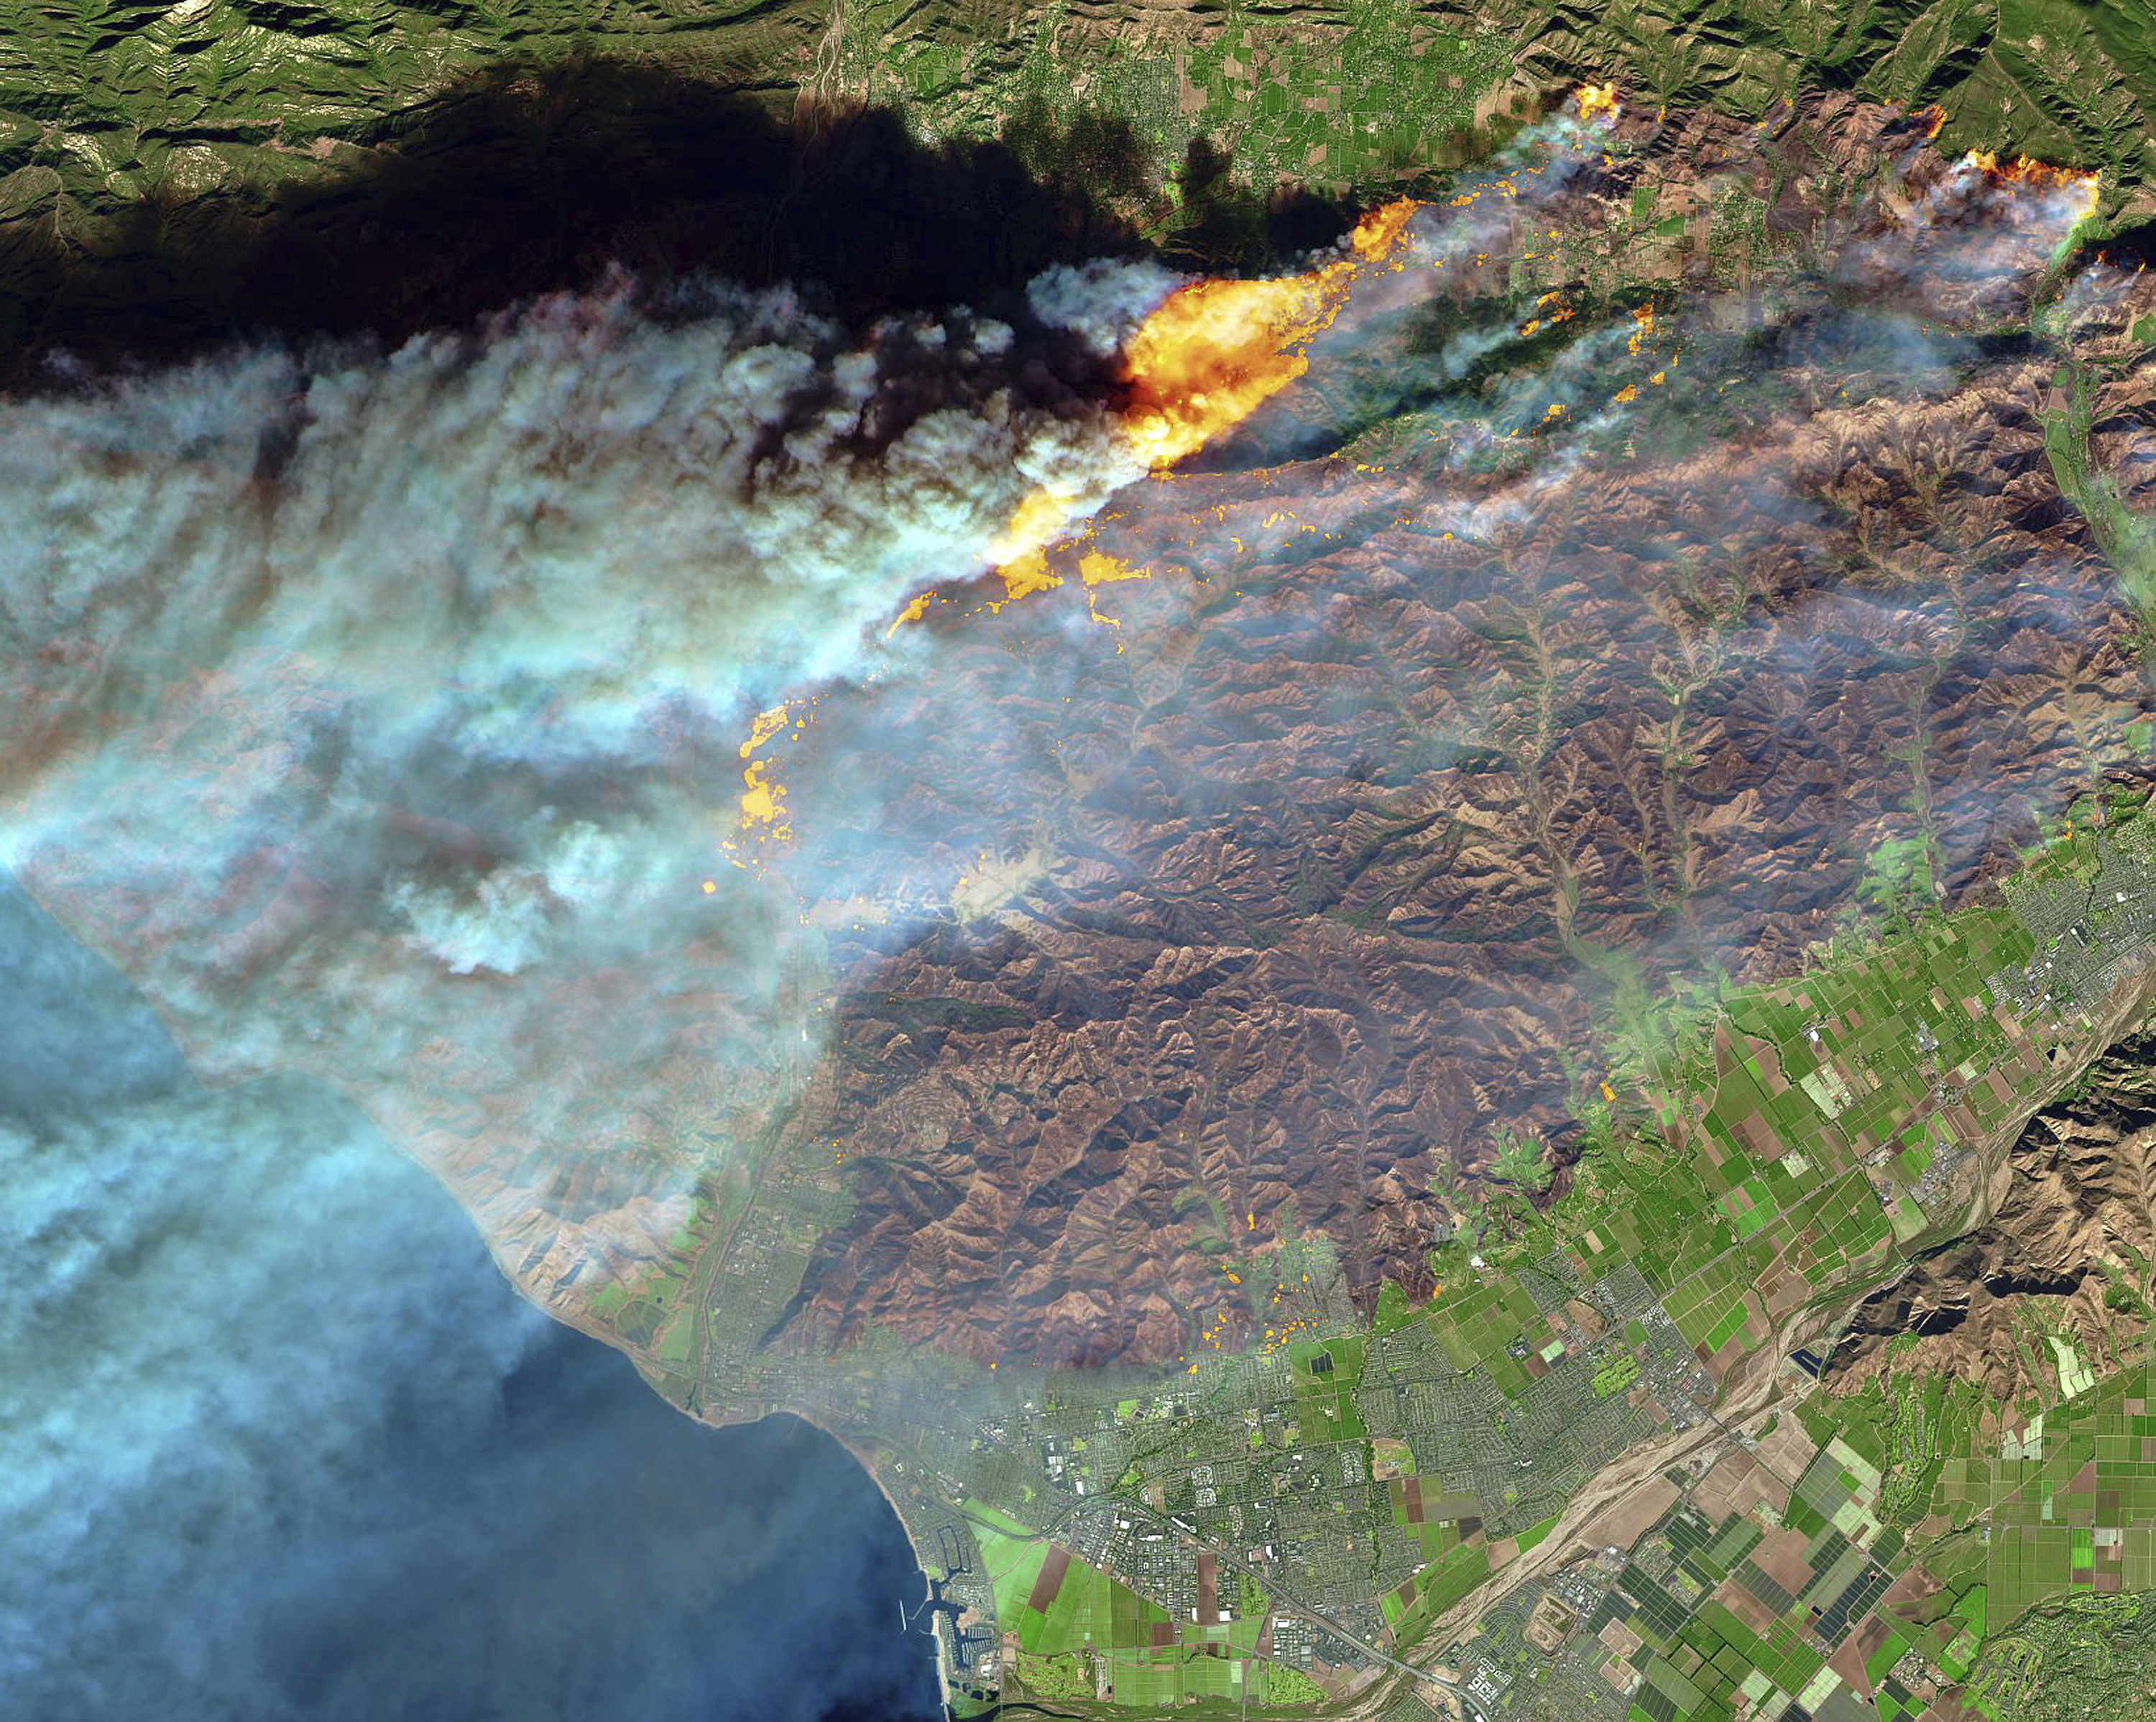 FILE - This Thursday, Dec. 7, 2017 false-color image from the European Space Agency's Sentinel-2 satellite via NASA, shows a brown burn scar from the Thomas fire north of the city of Ventura, Calif., at bottom center. The flames stand out starkly as smoke billows toward the Pacific Ocean and untouched areas of vegetation appear in bright shades of green. The huge wildfire that burned hundreds of homes in Santa Barbara and Ventura counties is now the largest in California's recorded history. State fire officials said Friday, Dec. 22, 2017, that the Thomas fire has scorched 273,400 acres, or about 427 square miles of coastal foothills and national forest. (European Space Agency/NASA via AP, File)